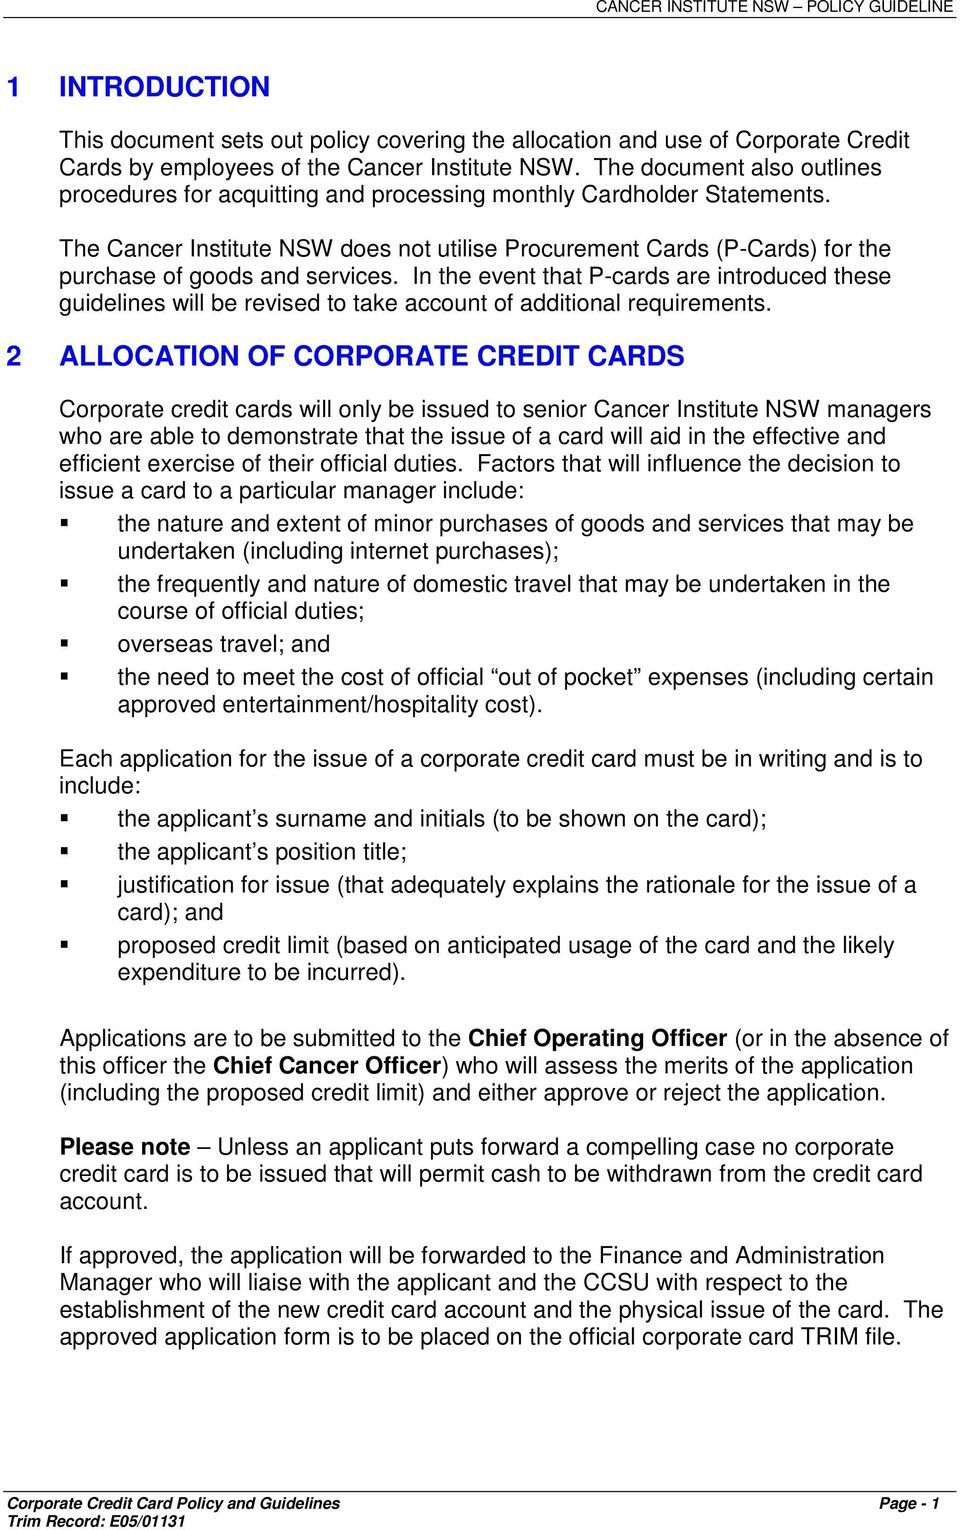 Corporate Credit Card Policy Guidelines Pdf Free Download Inside Corporate Credit Card Agreemen Corporate Credit Card Policy Template Credit Card Companies